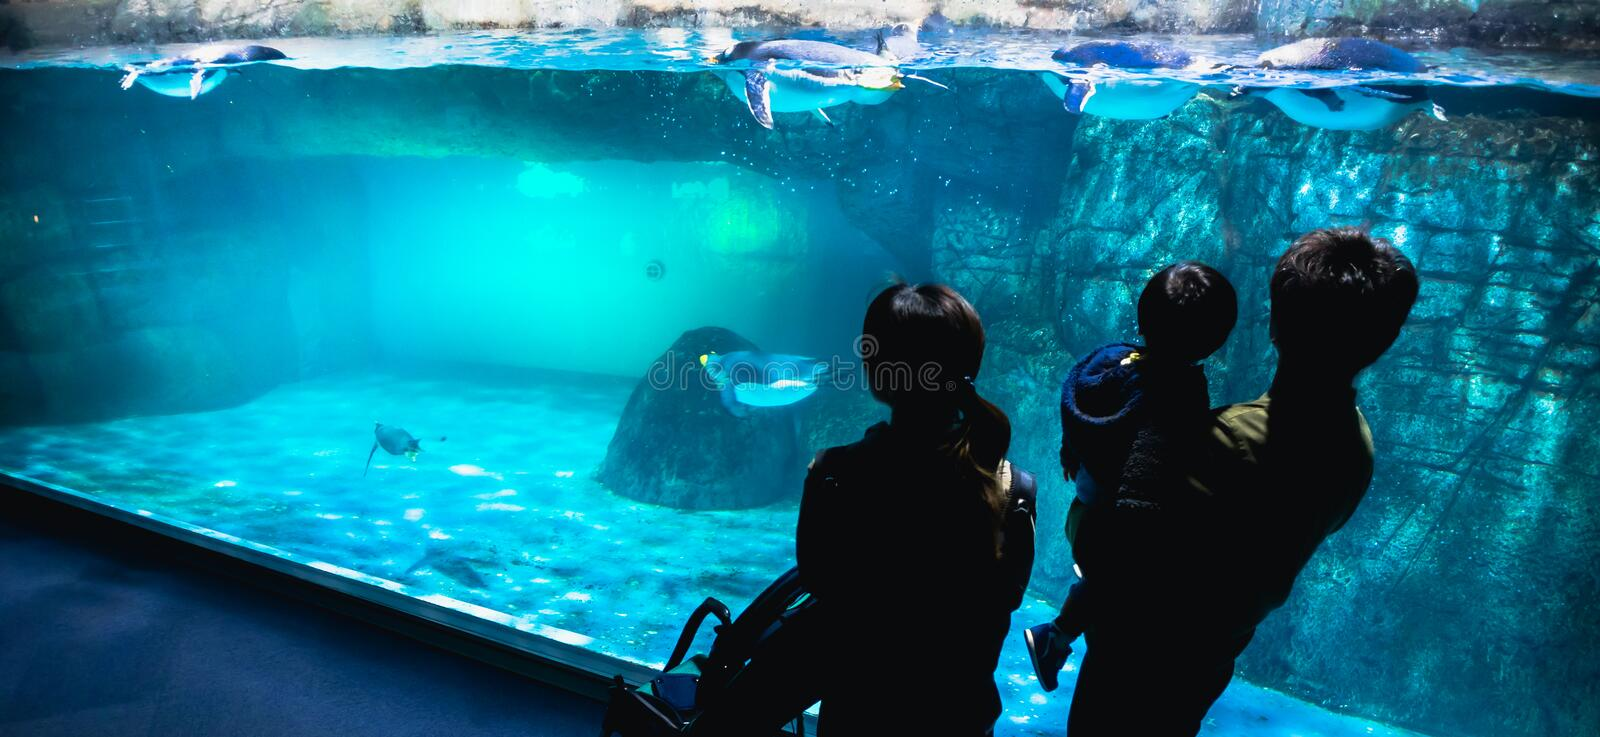 YOKOHAMA,JAPAN MARCH 13,2019 Family standing and looking at a group of Emperor penguins in the display area at Hakkeijima Sea stock images